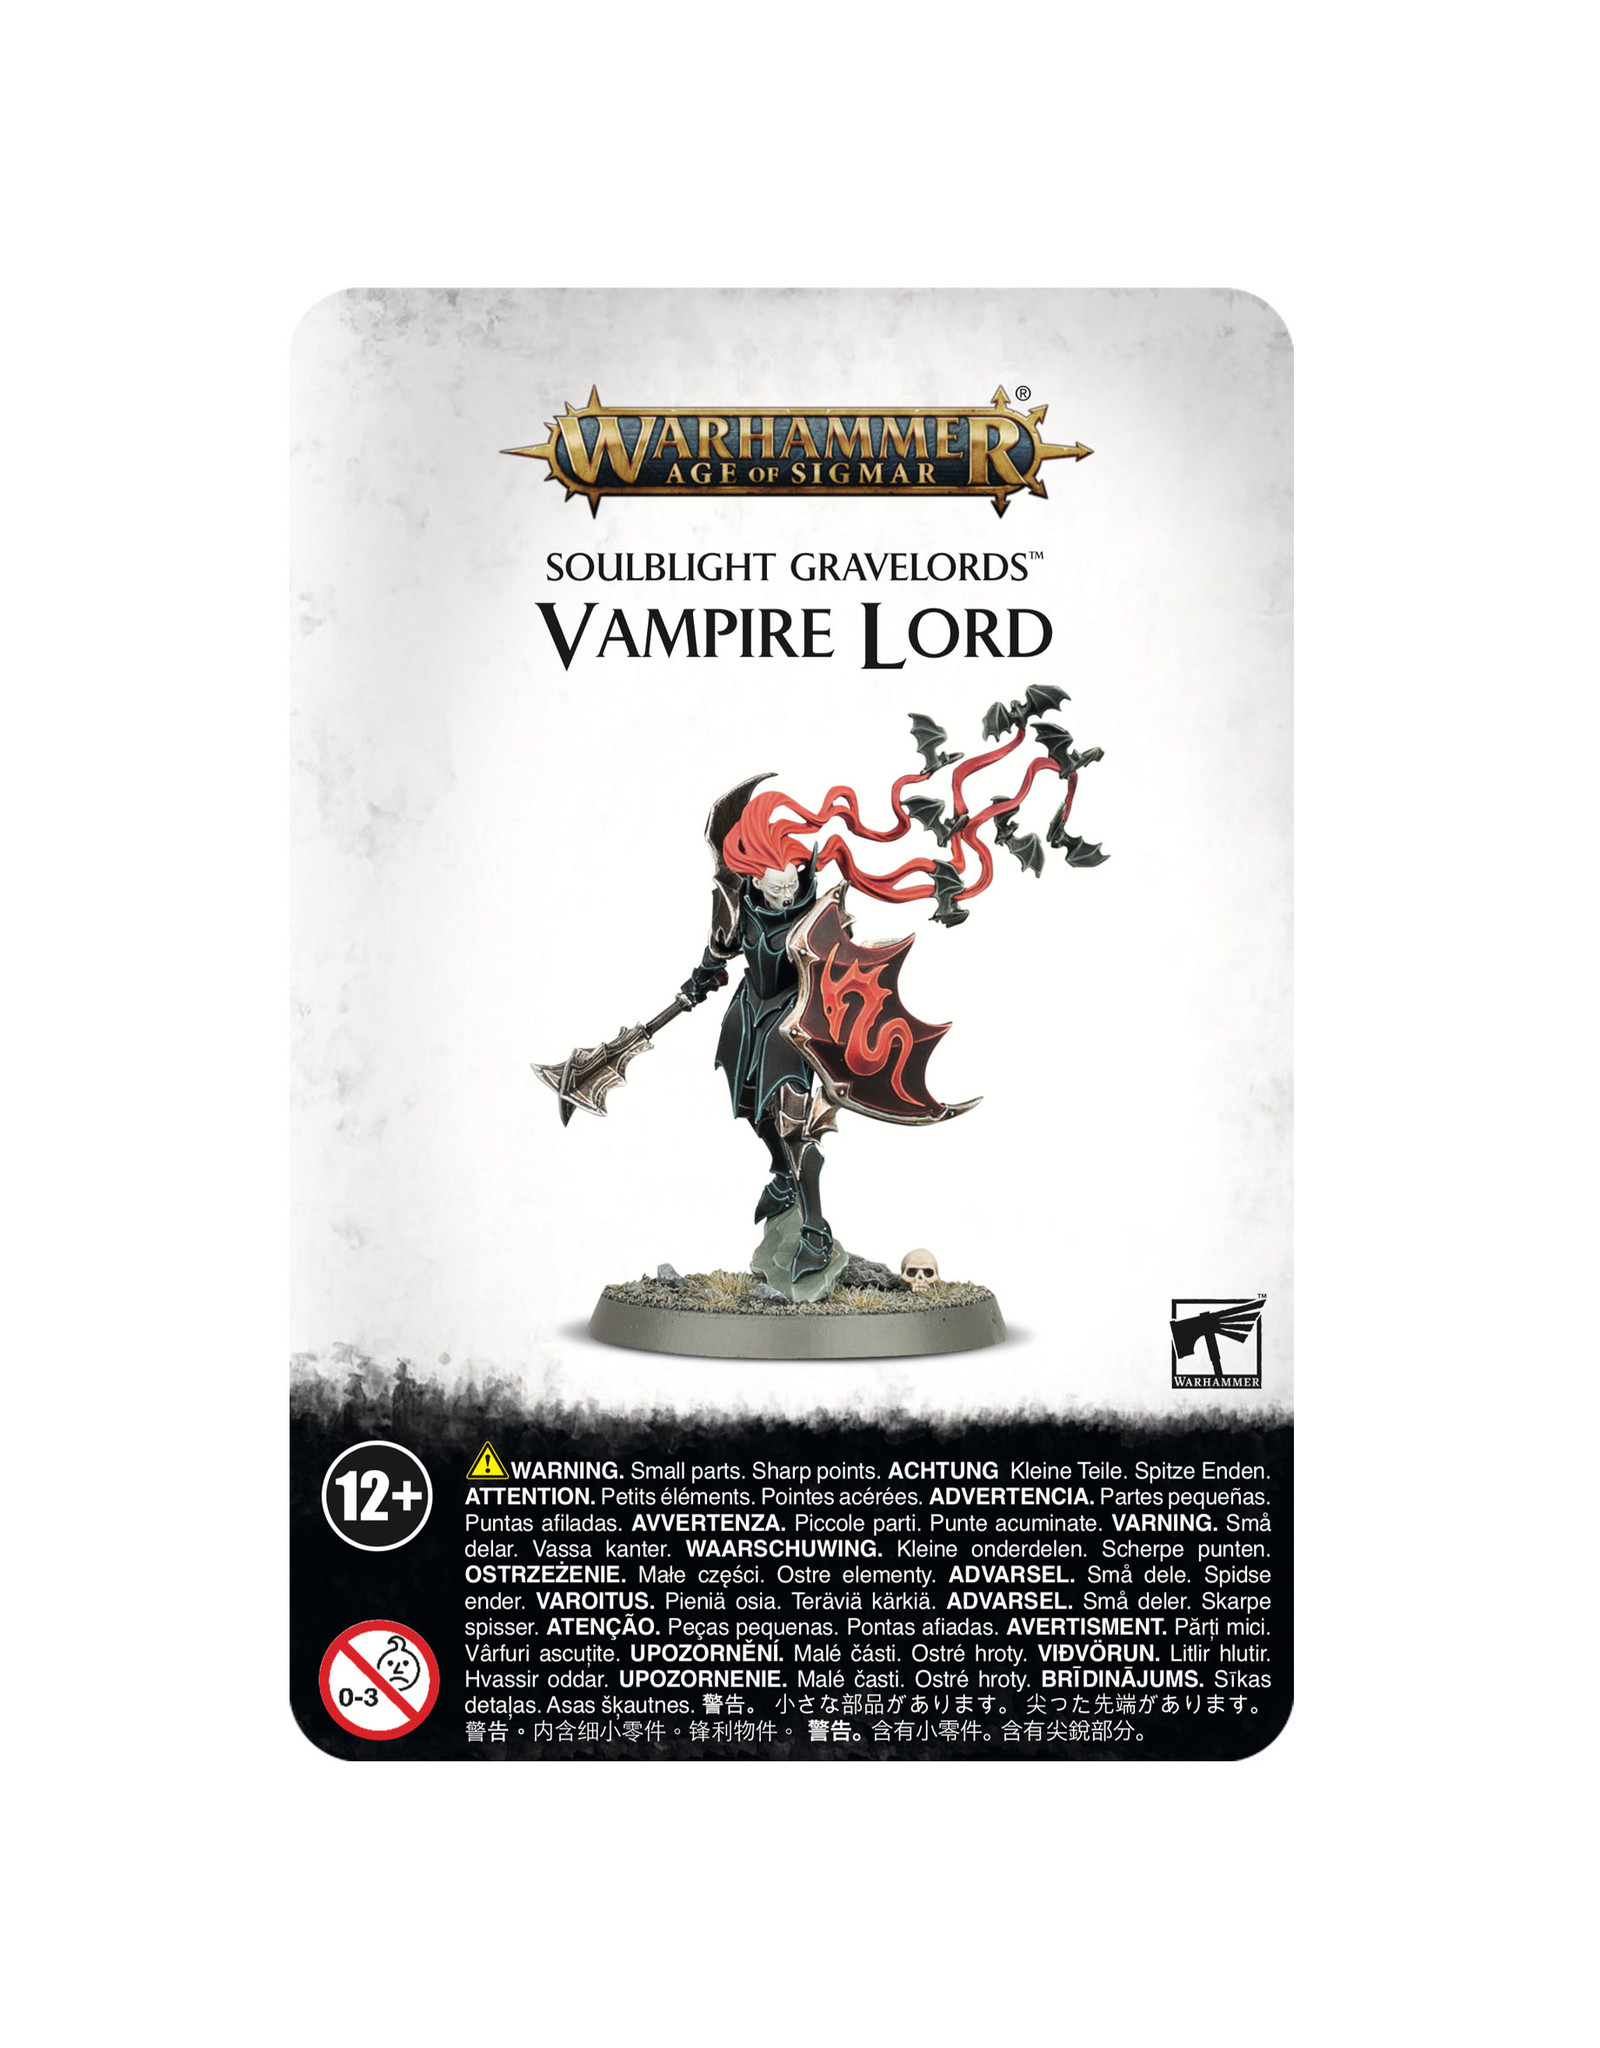 Age of Sigmar Soulblight Gravelords: Vampire Lord